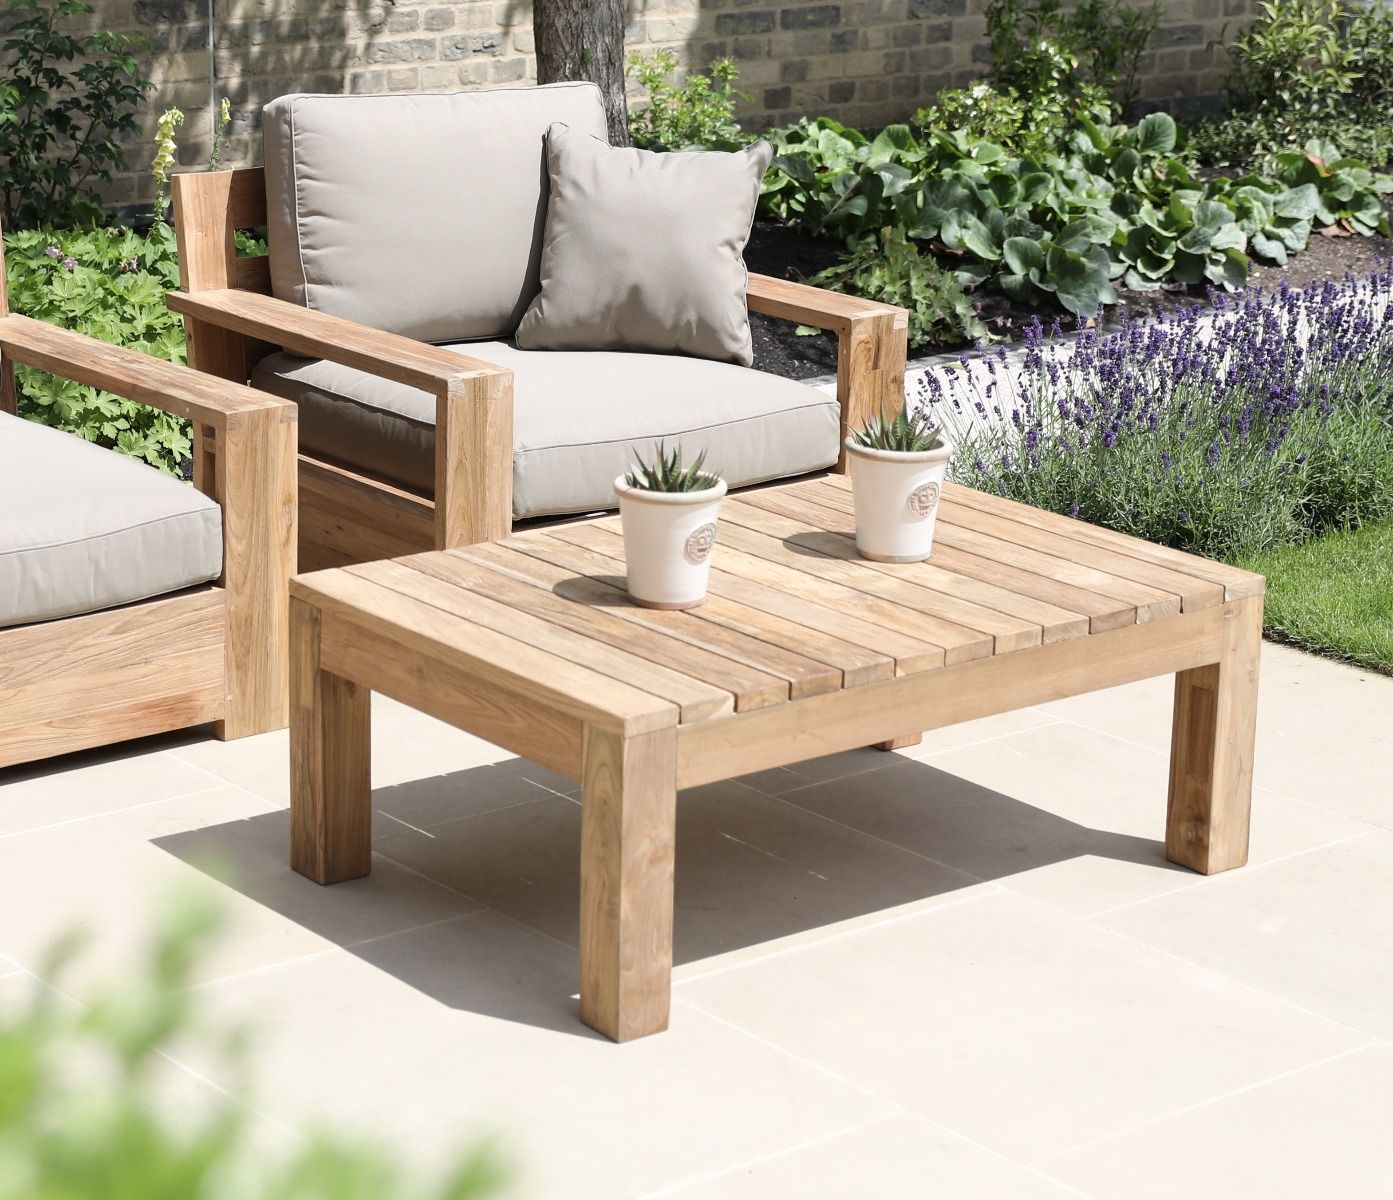 Outdoor Coffee Table: Teak Outdoor Coffee Table